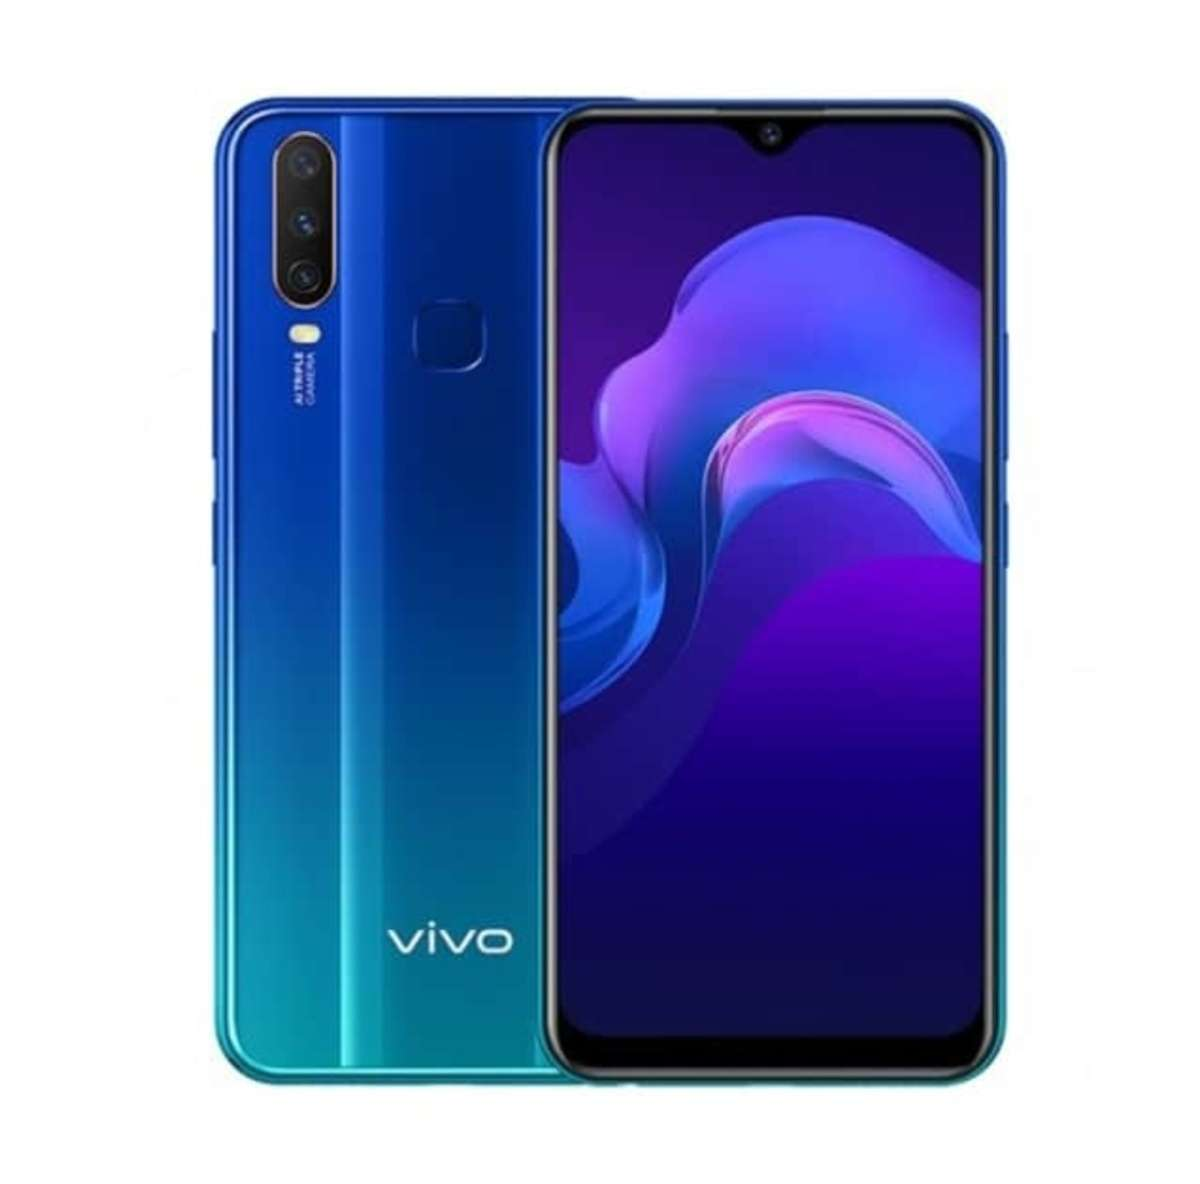 Vivo y12 price in Nigeria, price of Vivo y12 in Nigeria, how much is Vivo y12 in Nigeria, where to buy vivo y12 in Nigeria, vivo y12 specs and price in Nigeria, vivo y12 price, vivo y12 specs, vivo y12 full specification, vivo y12 in Nigeria, vivo y12 price in slot